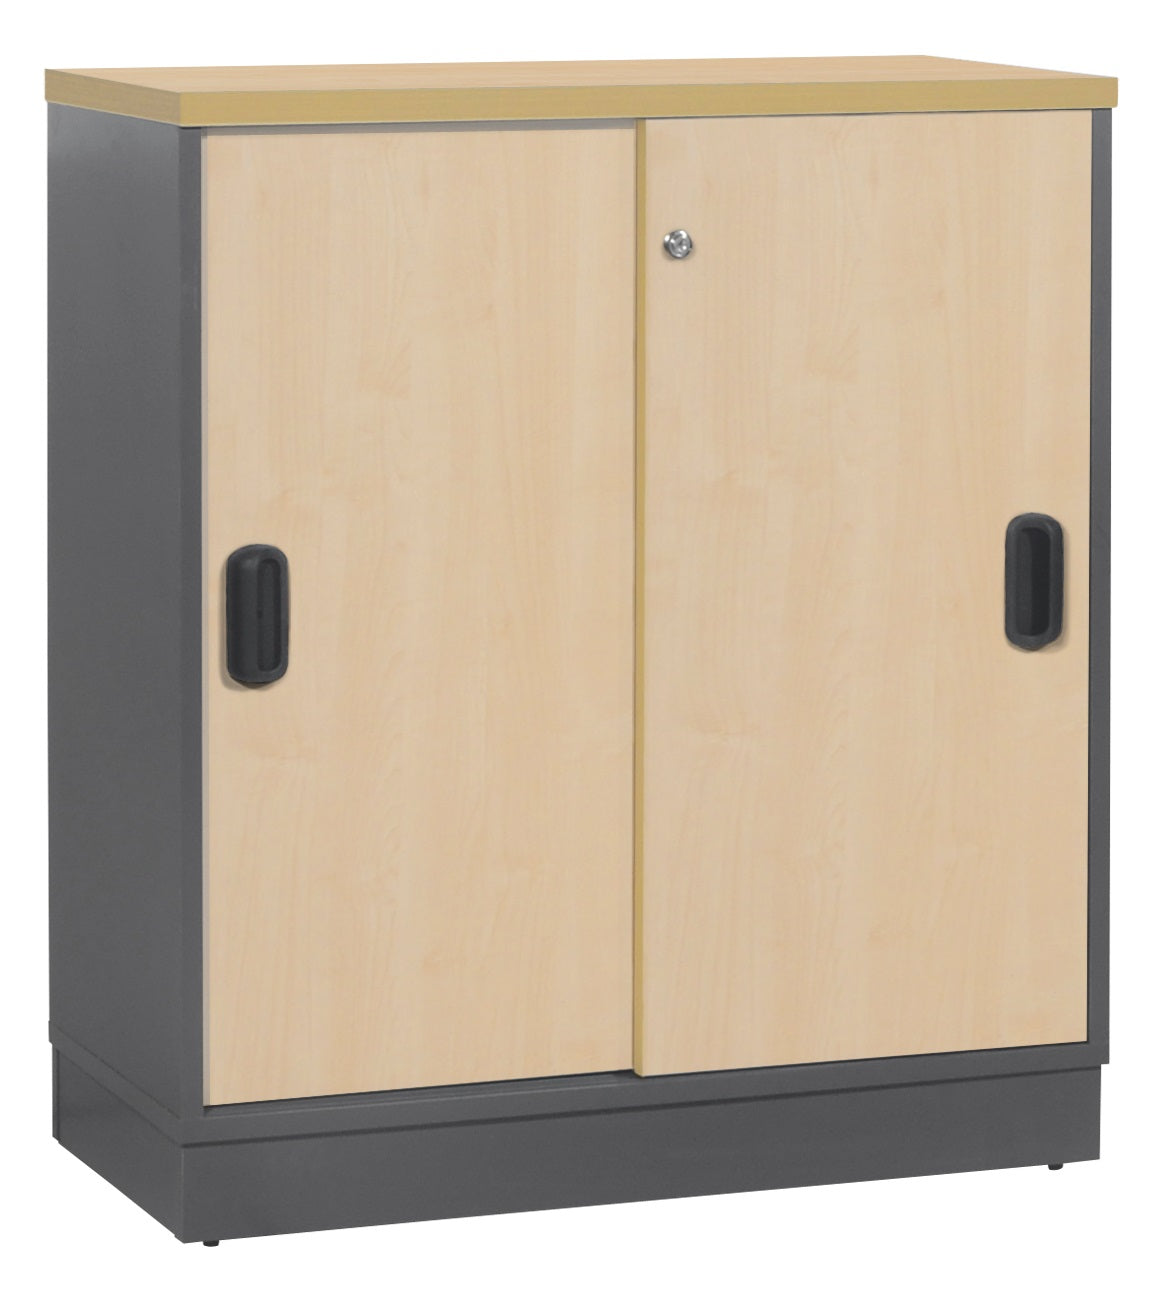 Sliding Door Cabinet With Base Buy Office Furniture Online At